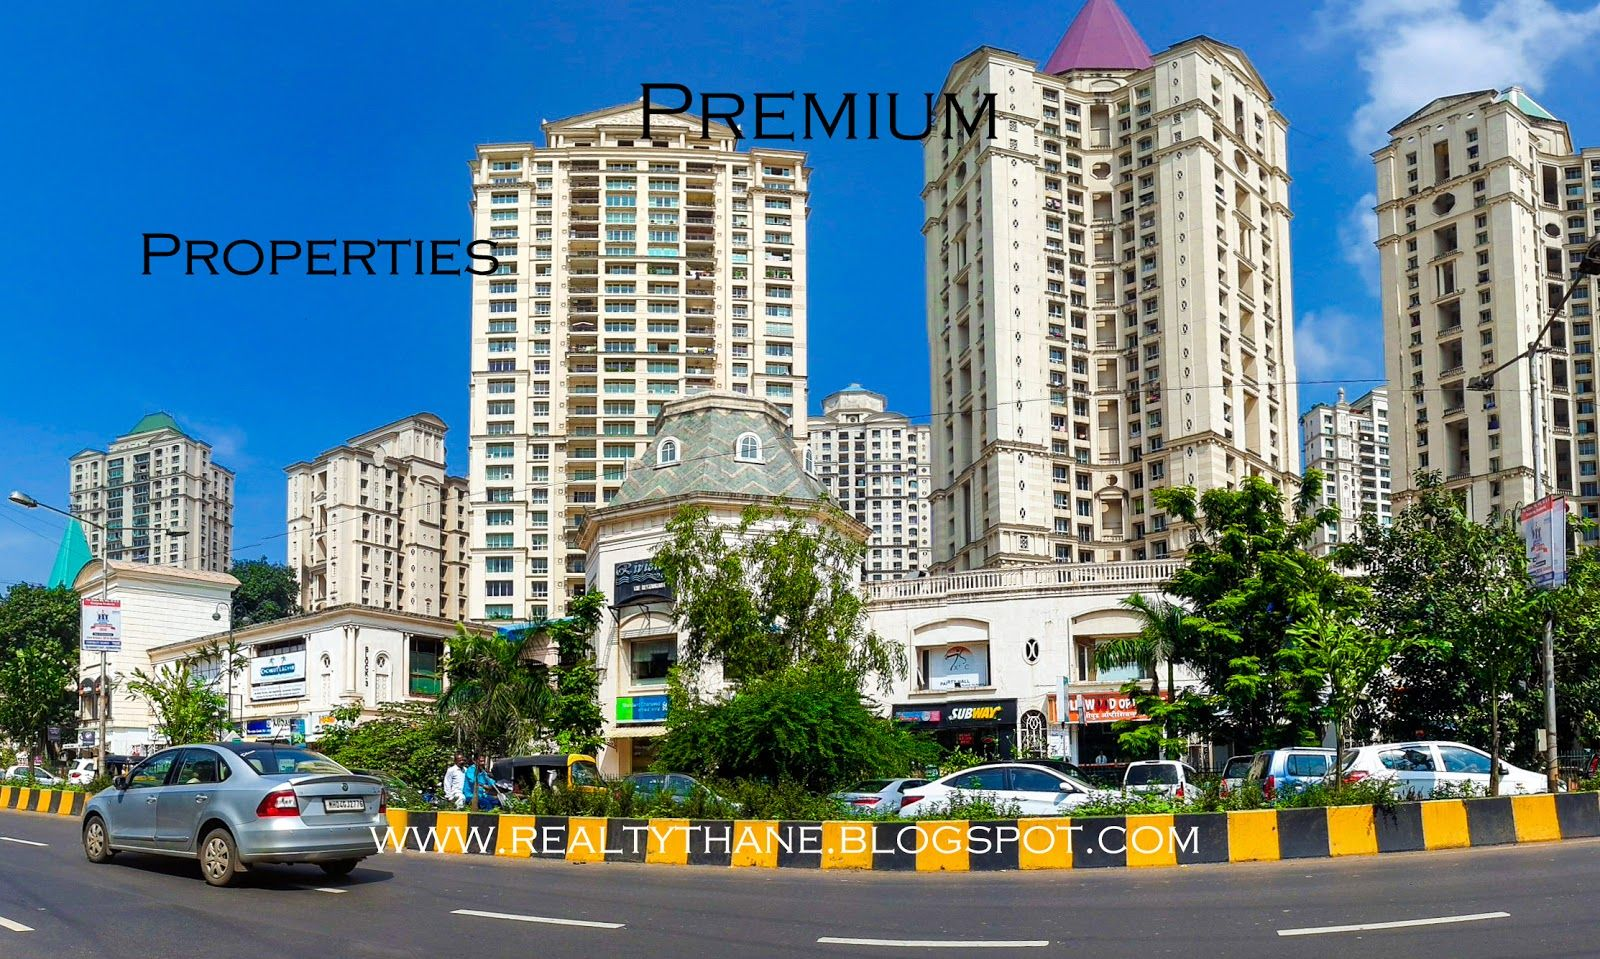 Bhk and bhk apartments flats for sale at hiranandani meadows thane